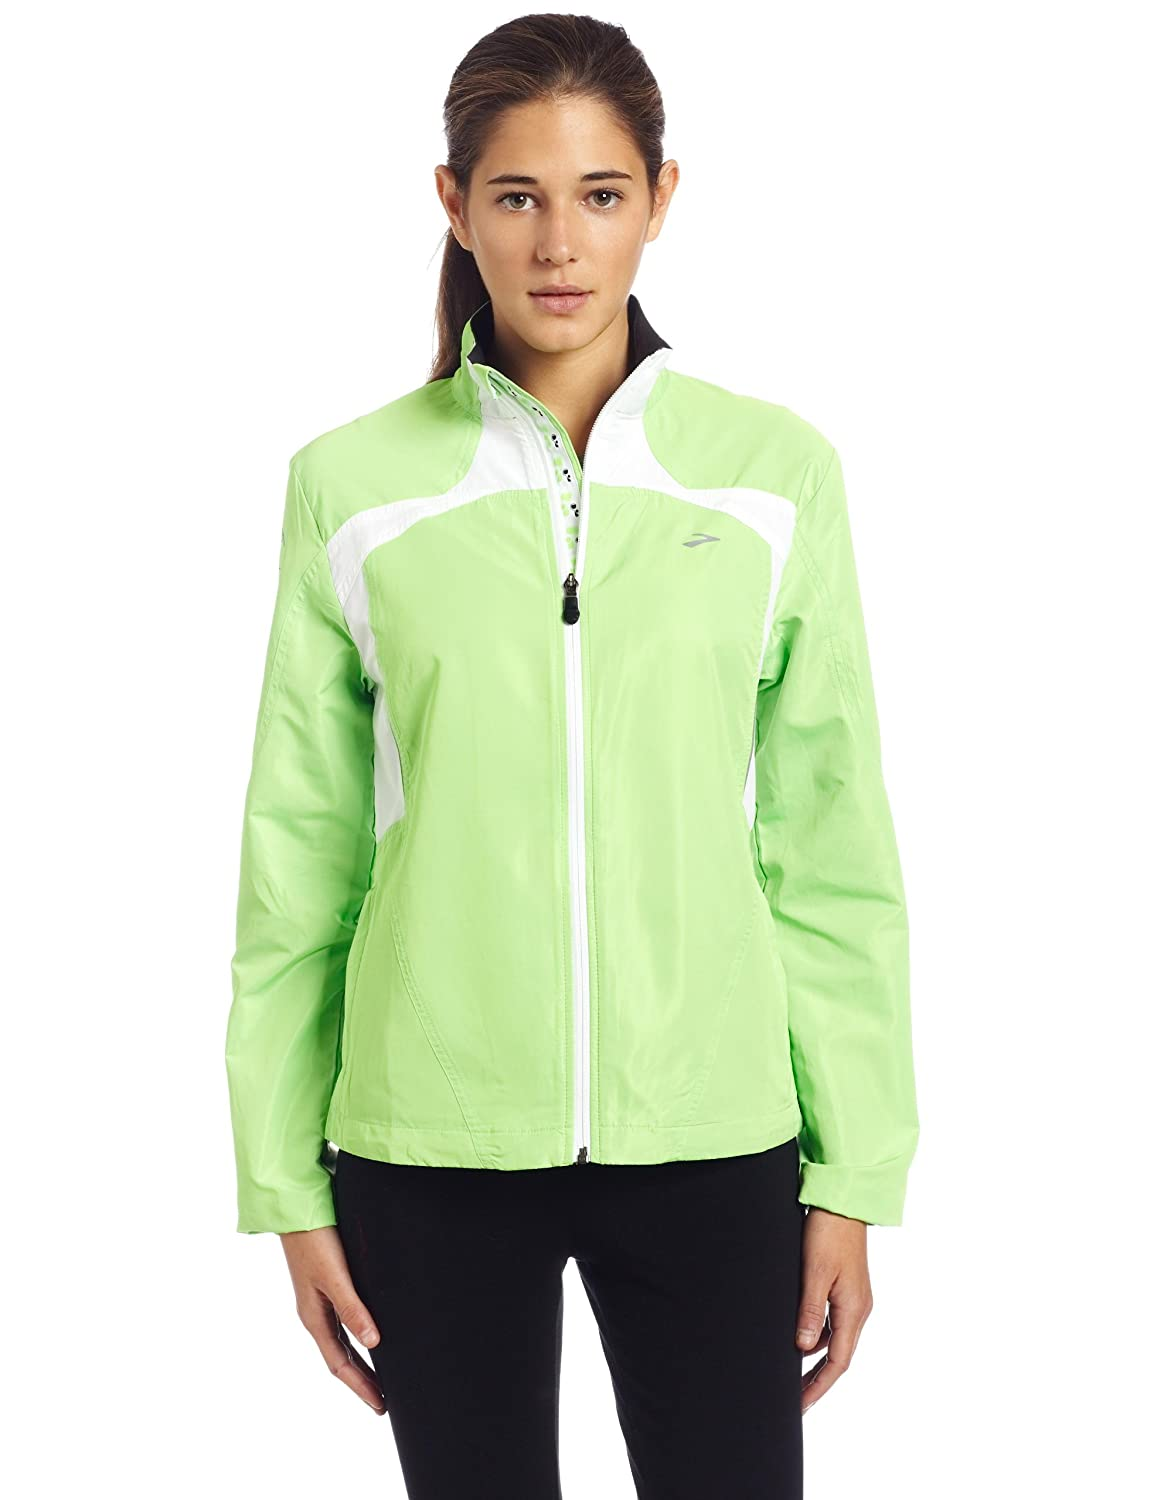 Brooks Women's Essential Run Jacket,Brite Green/Brite White,Small